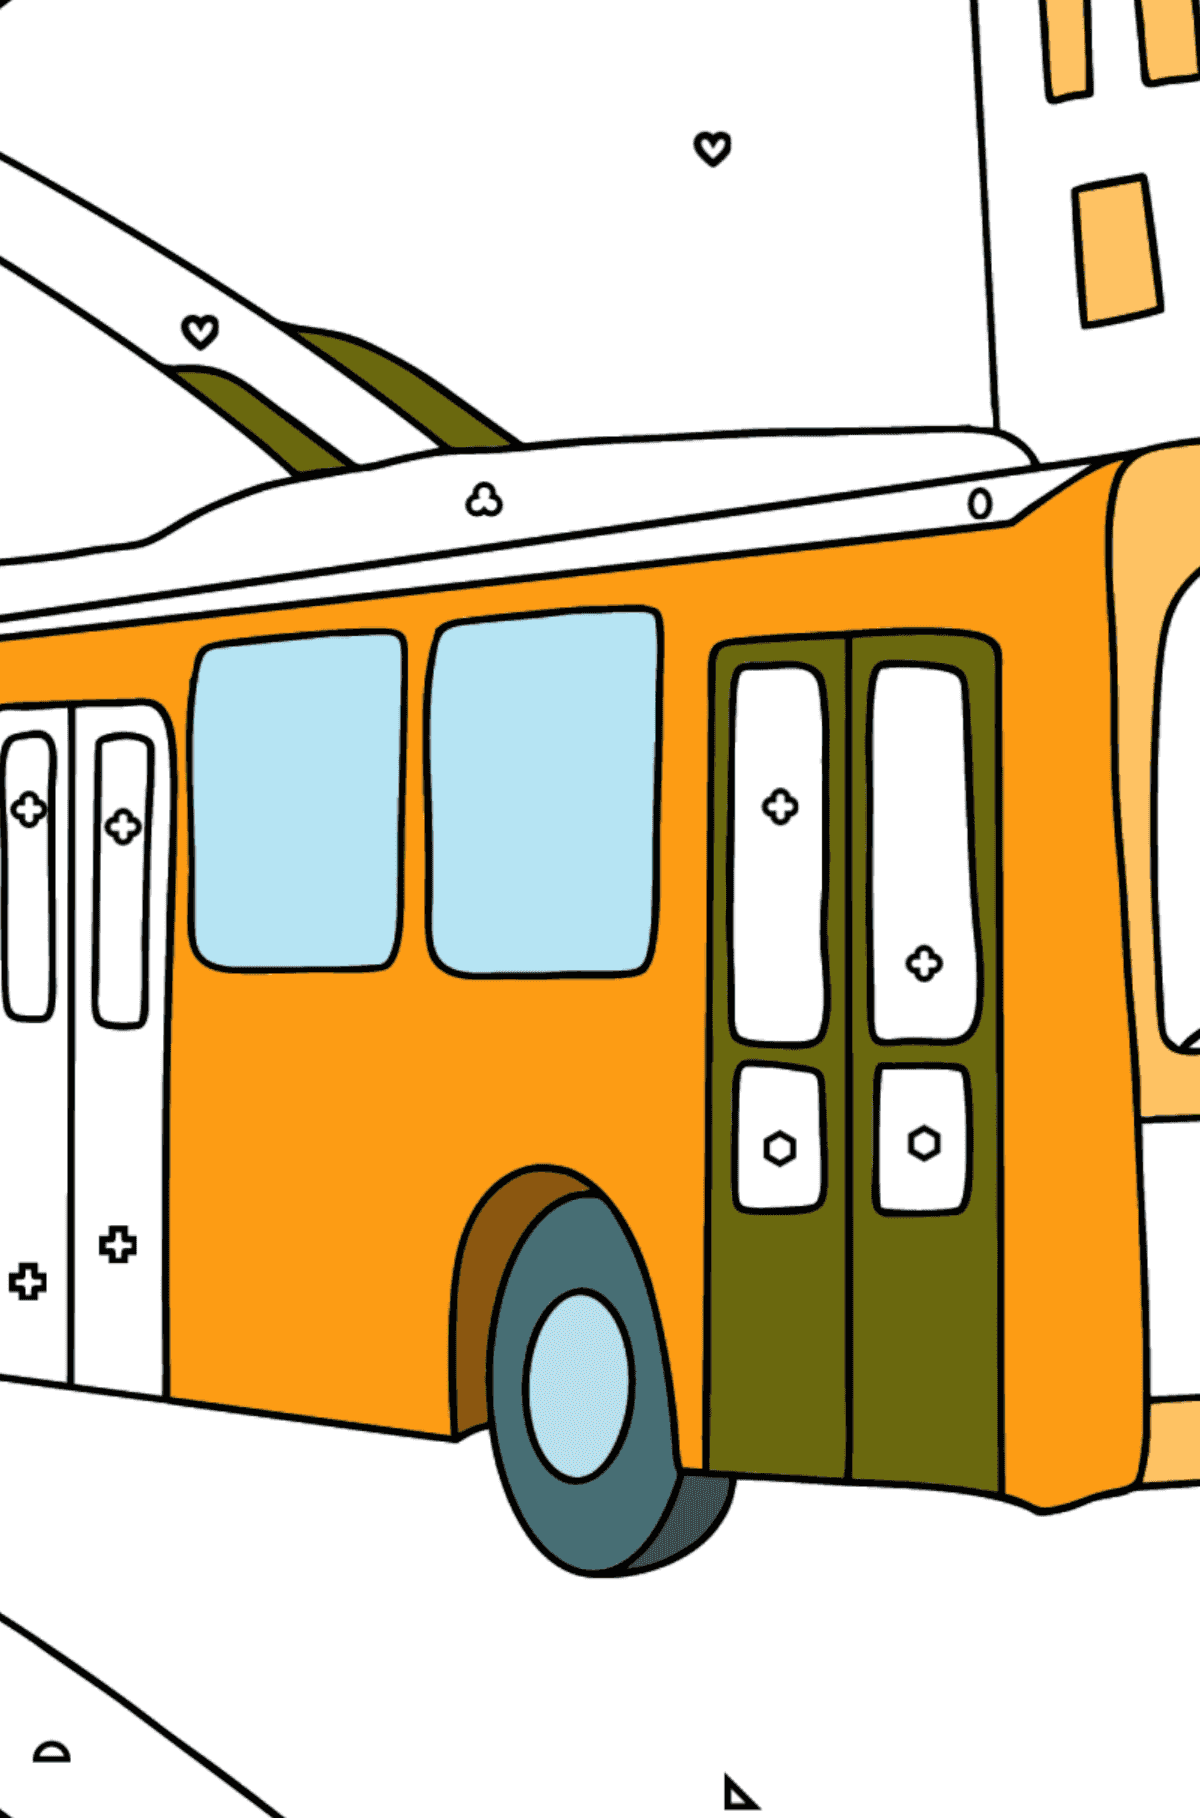 Сoloring page Trolley Bus - Coloring by Geometric Shapes for Kids